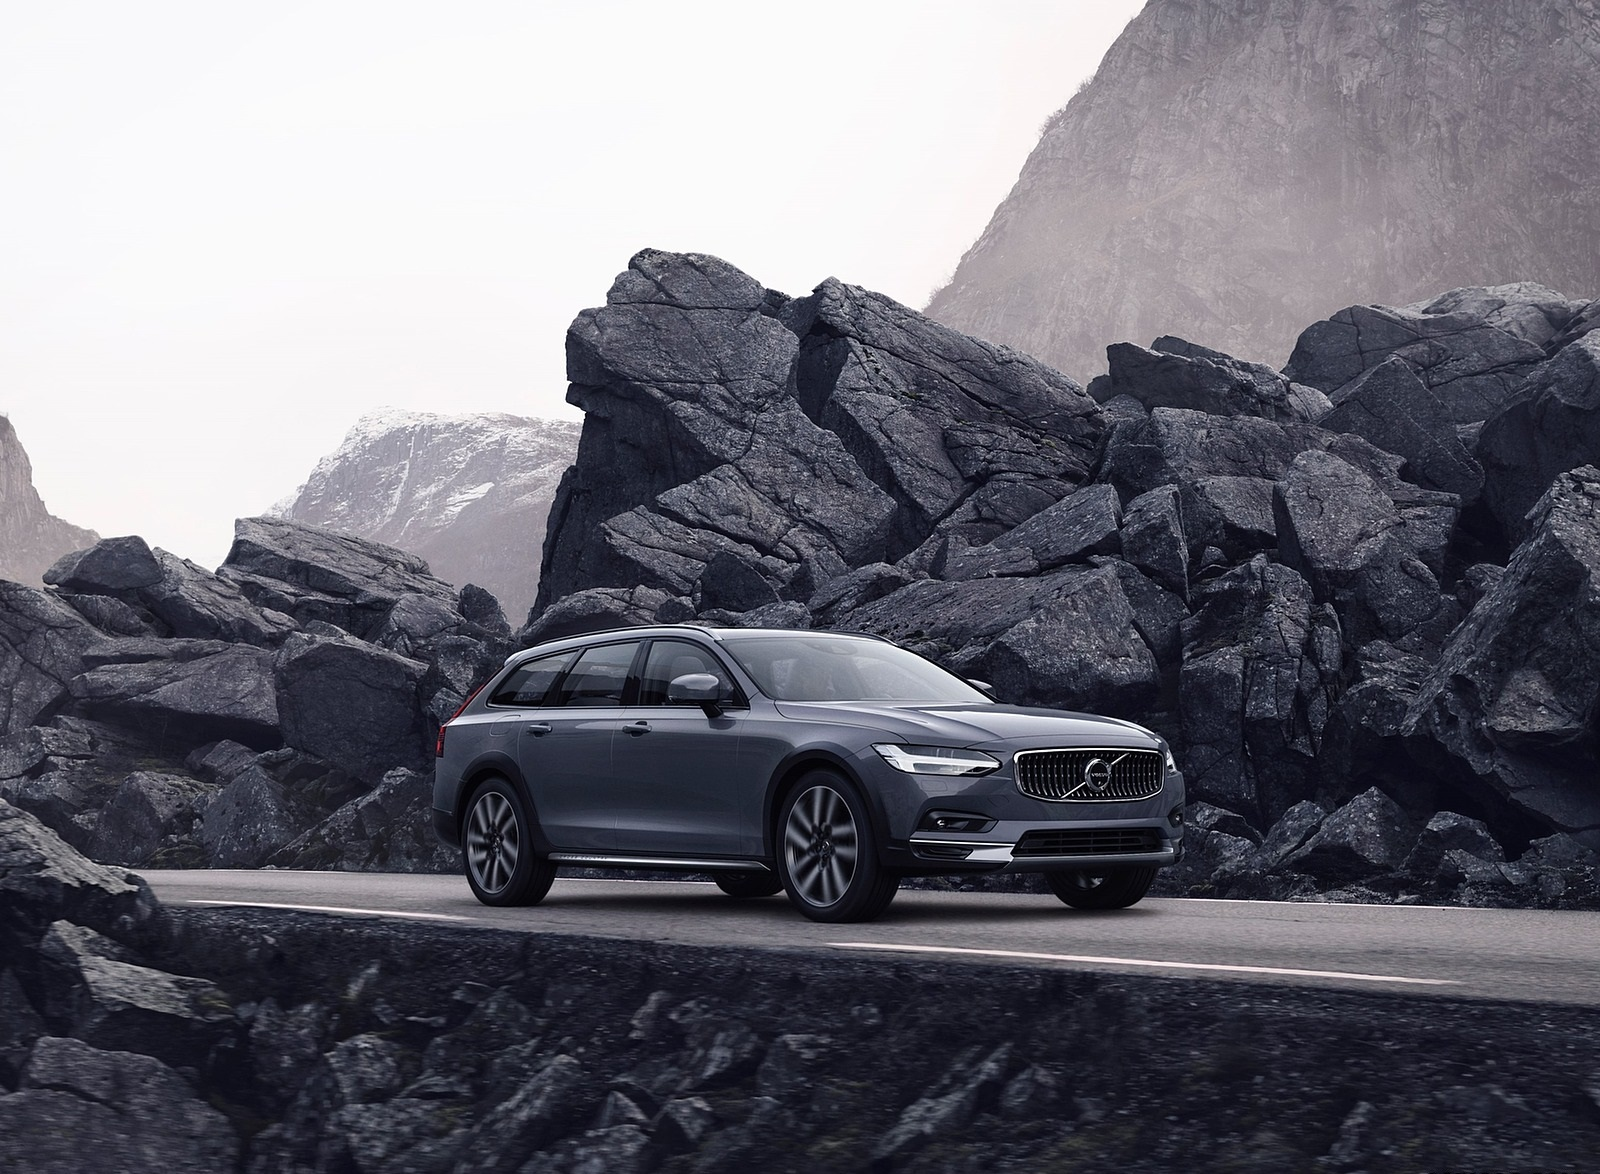 2020 Volvo V90 Cross Country Recharge T8 plug-in hybrid (Color: Thunder Grey) Front Three-Quarter Wallpapers (1)